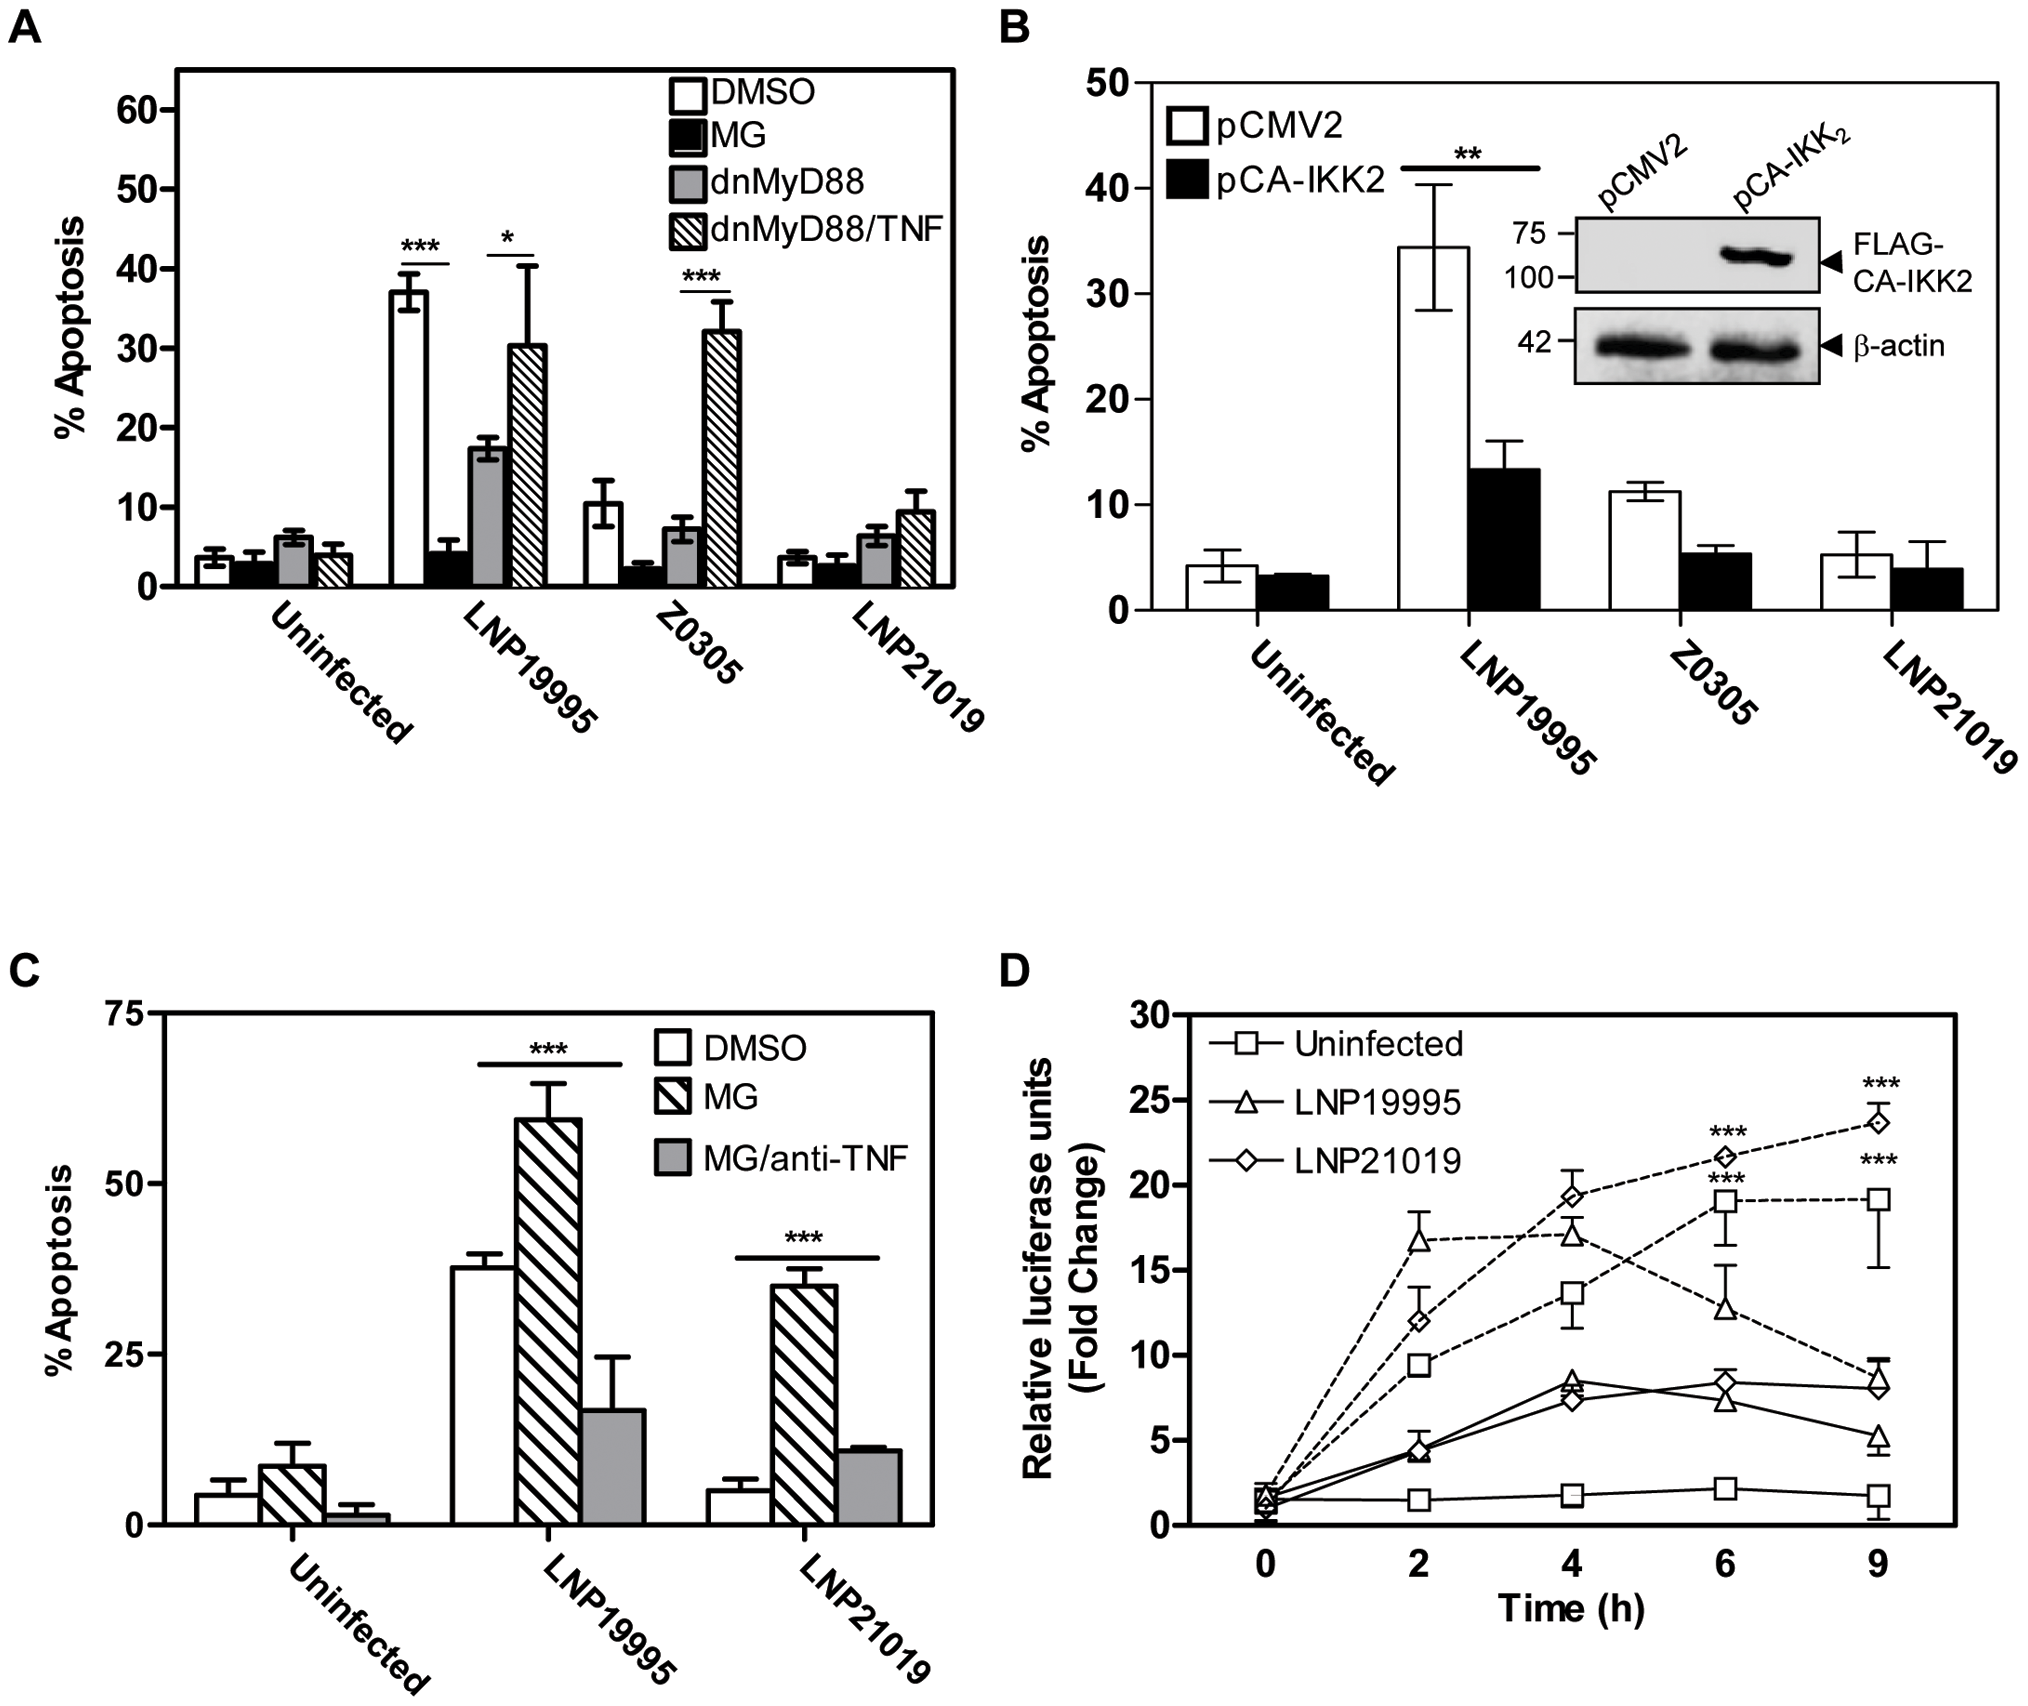 Role of NF-κB in apoptosis of Hec-1B cells induced by meningococcal ST-11 isolates.